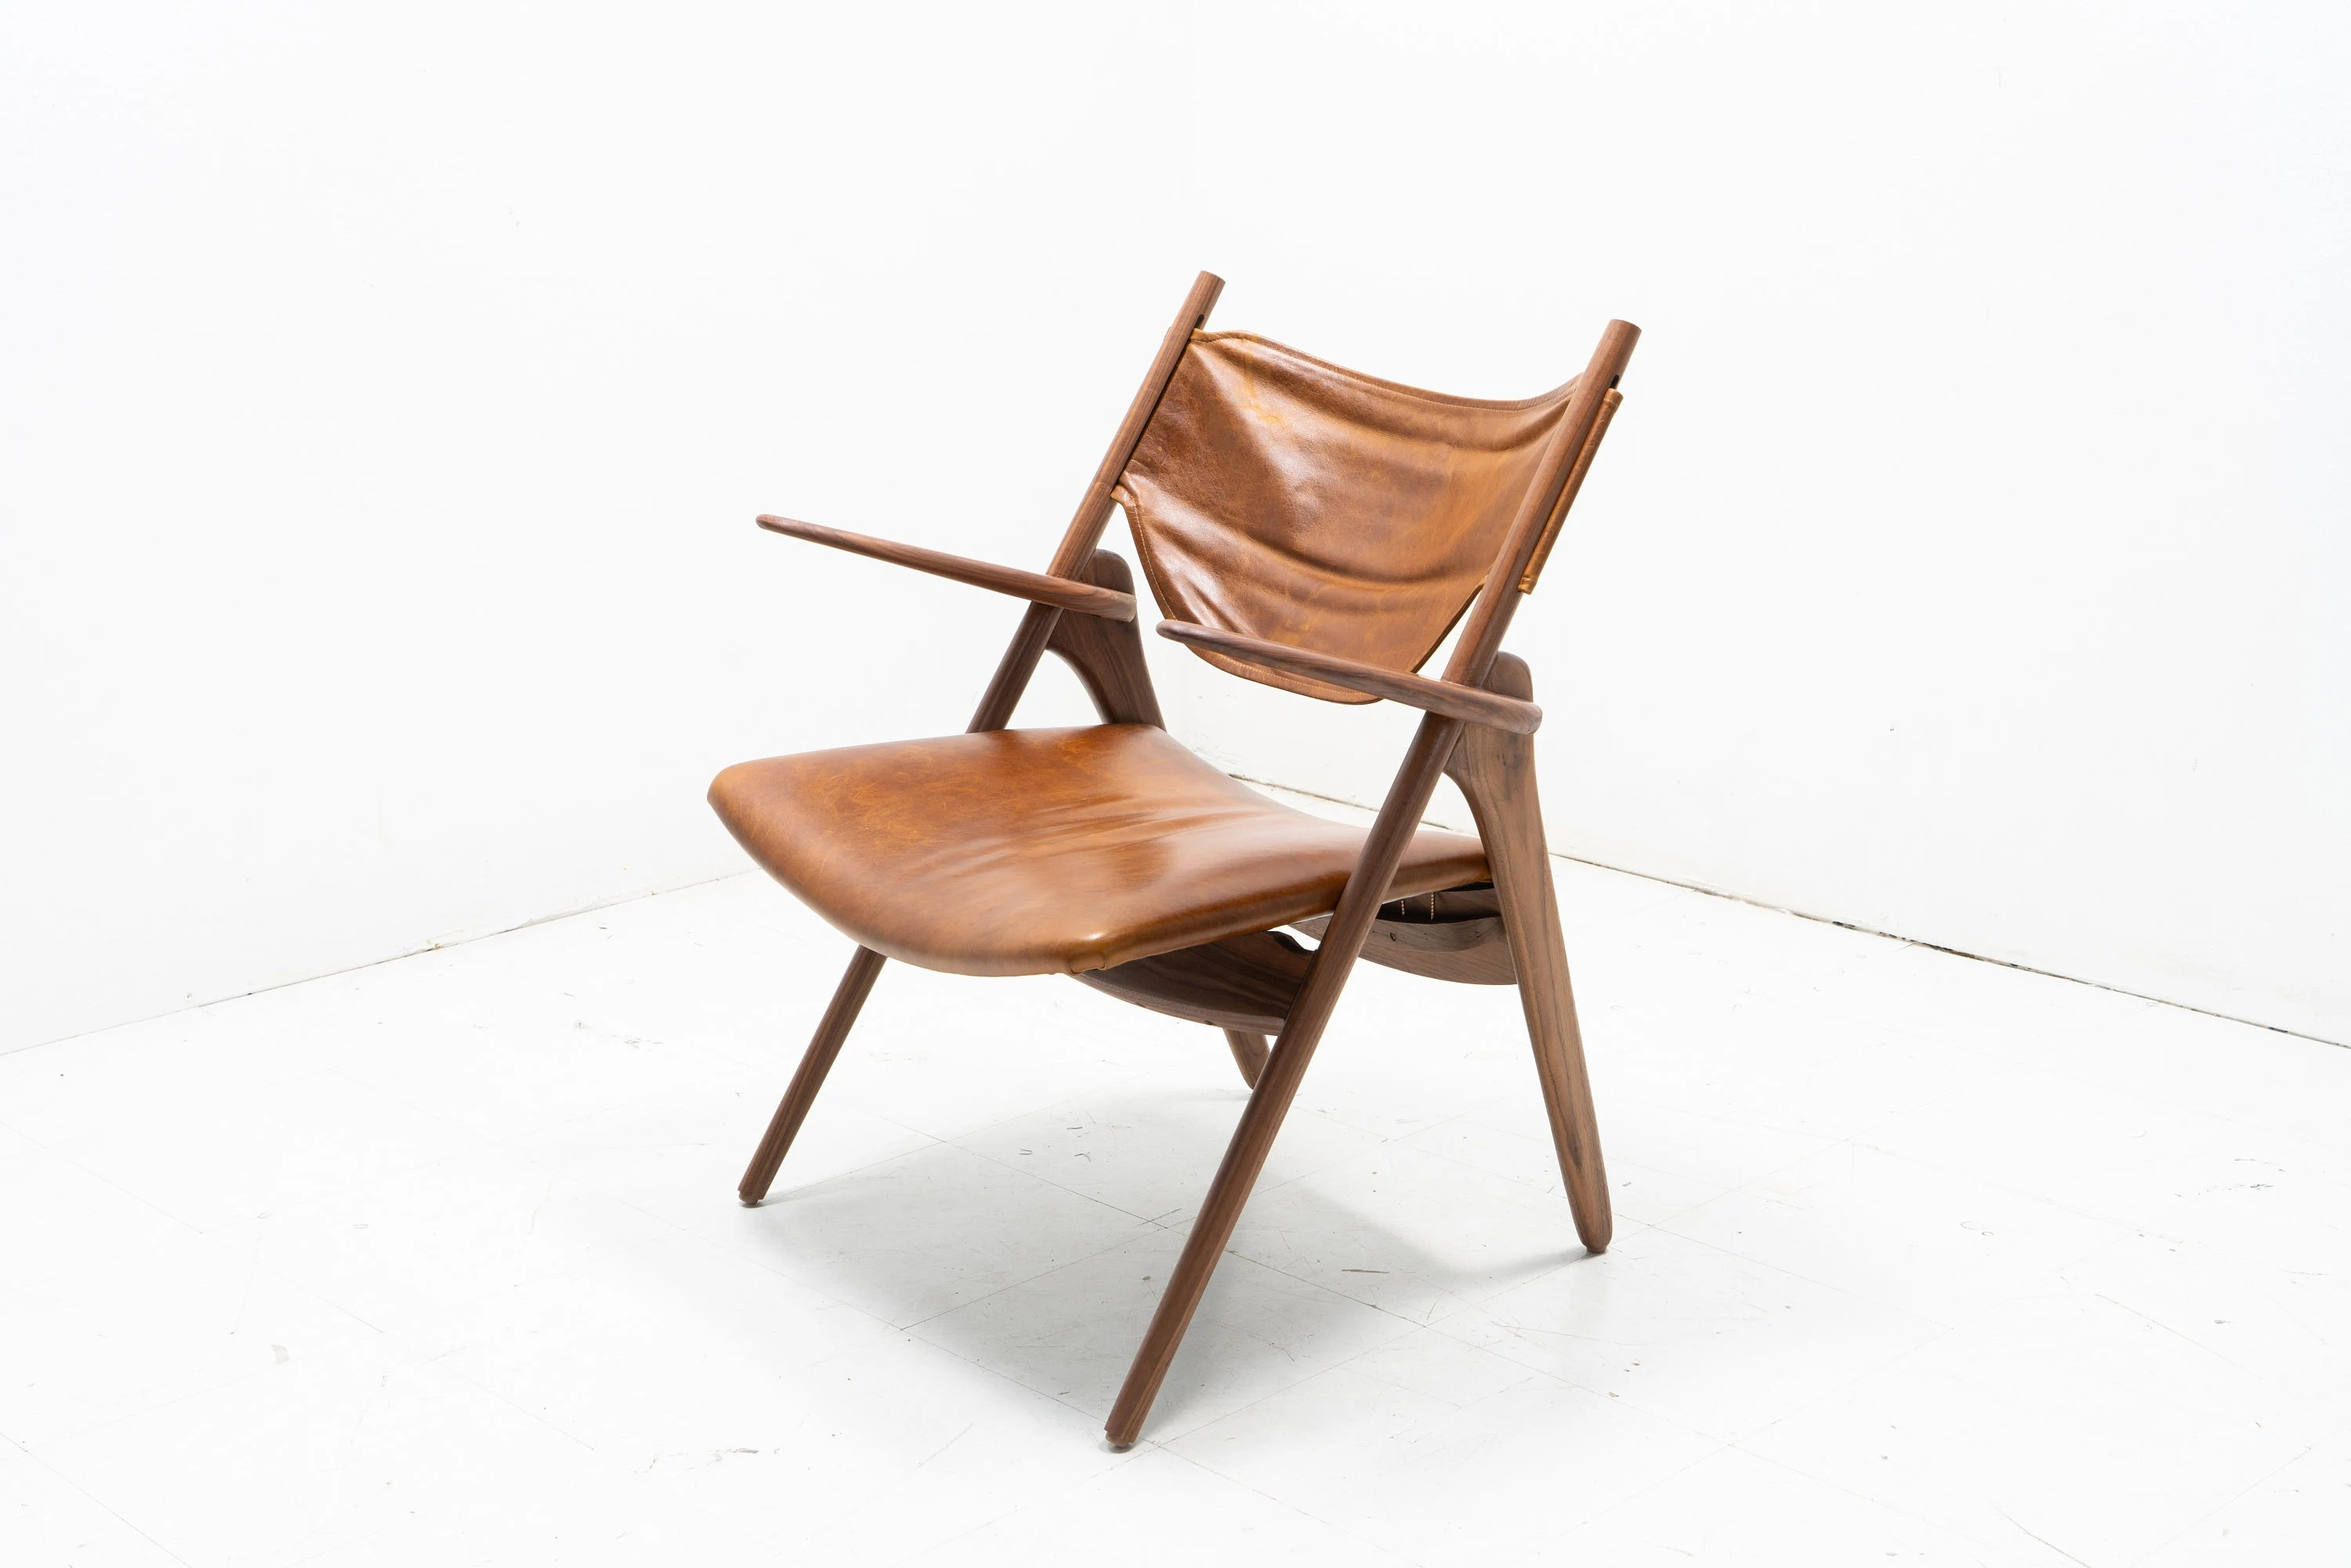 sling back chair kd smart owner s manual etsy exposed walnut in the fashion of hans wegner